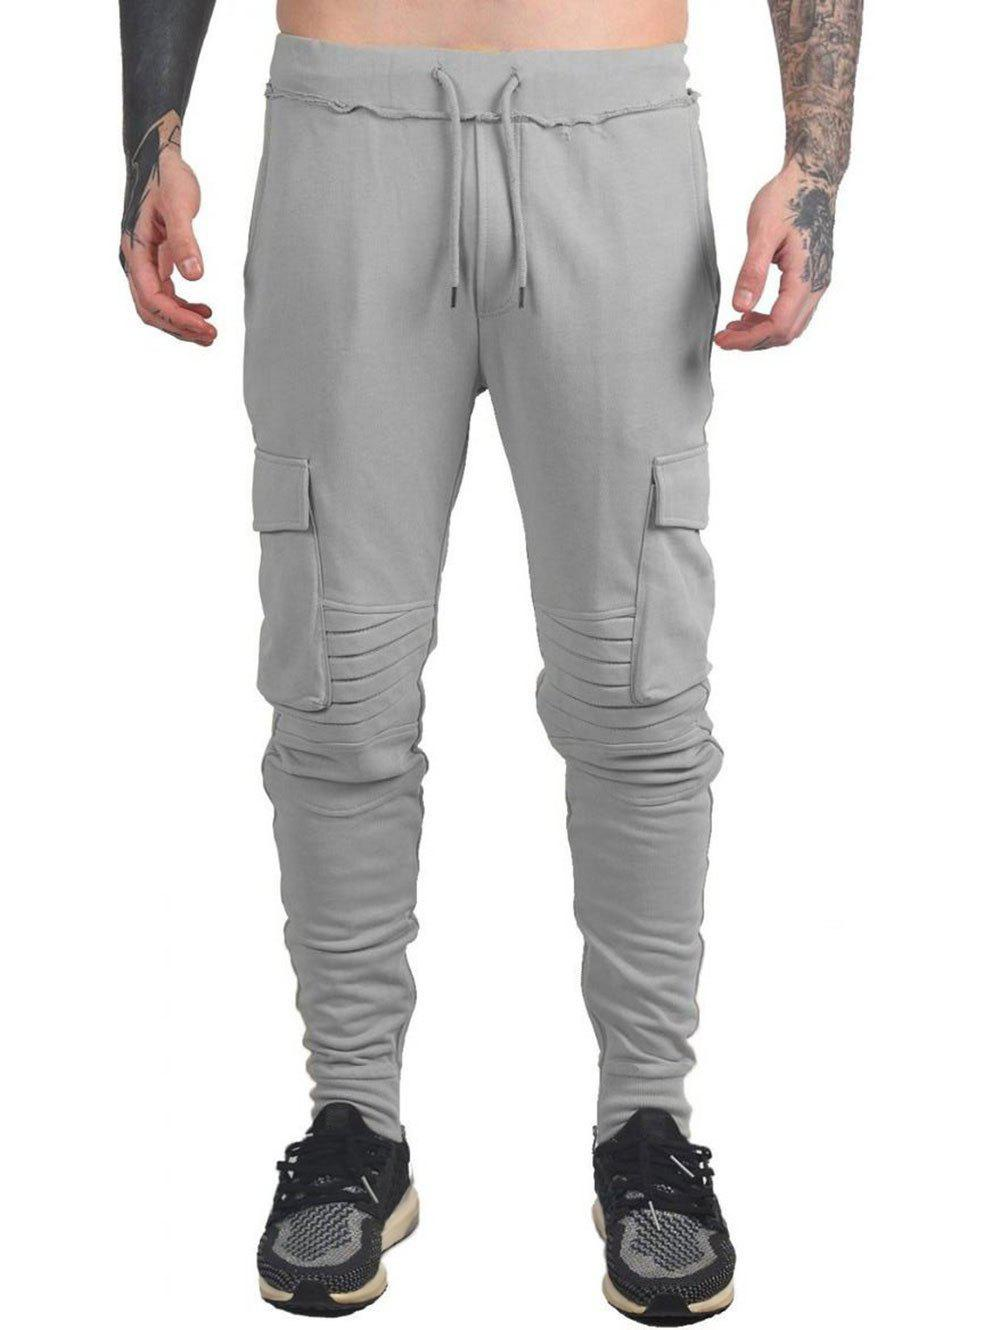 Drawstring Ruched Tapered Sports Pants - LIGHT GRAY 3XL